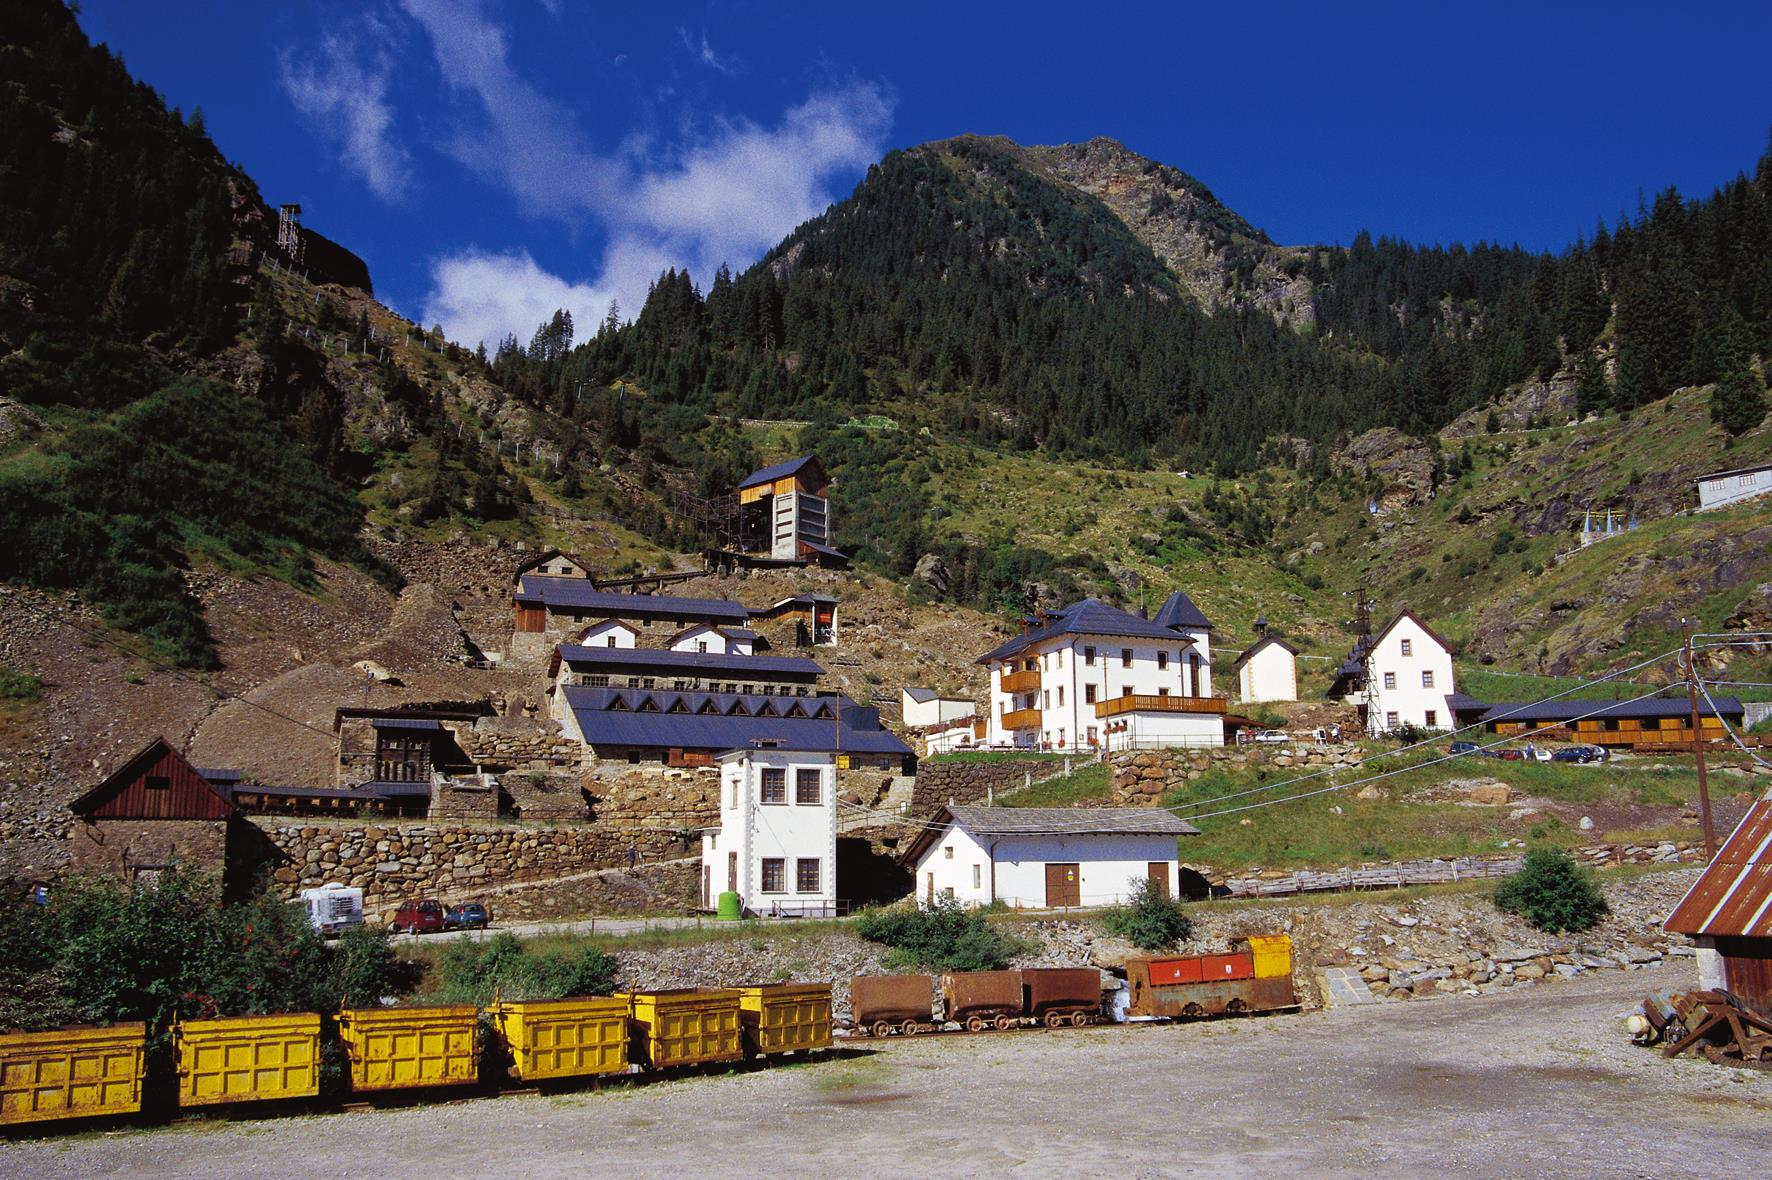 South Tyrol Museum of Mining